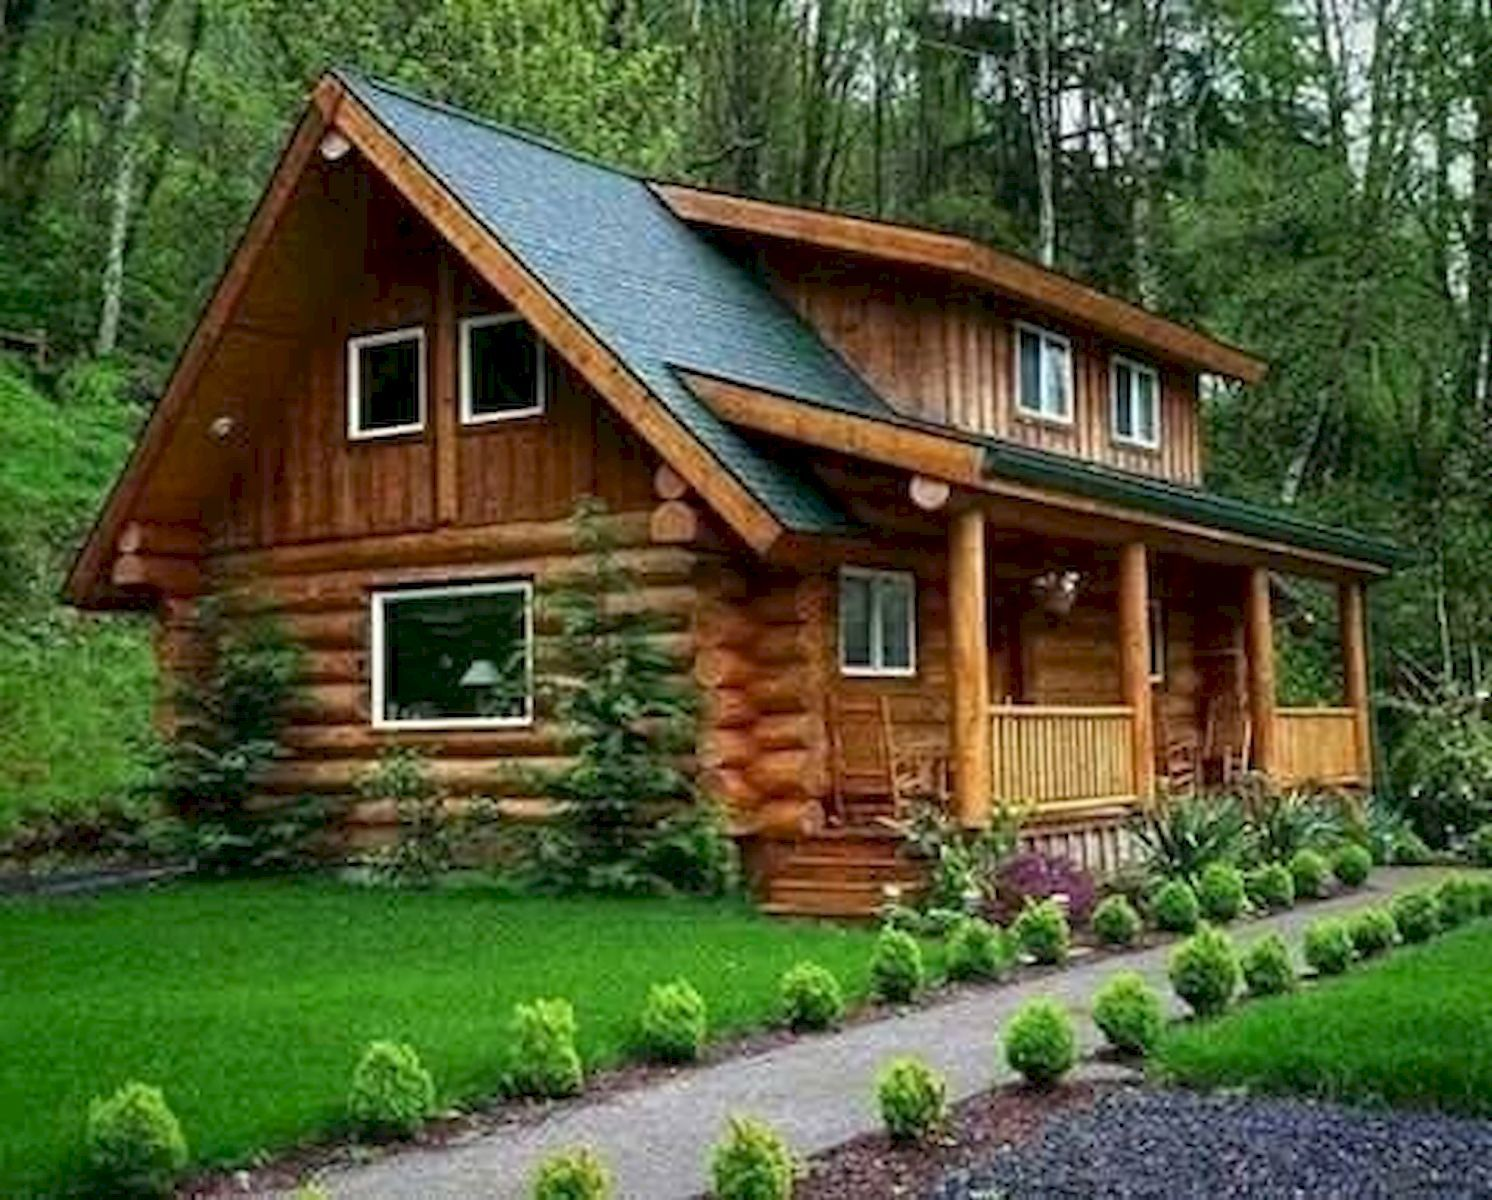 Cool 75 Great Log Cabin Homes Plans Design Ideas Https Livingmarch Com 75 Great Log Cabin Homes Plans Design Id Cabins And Cottages Log Homes Log Cabin Homes